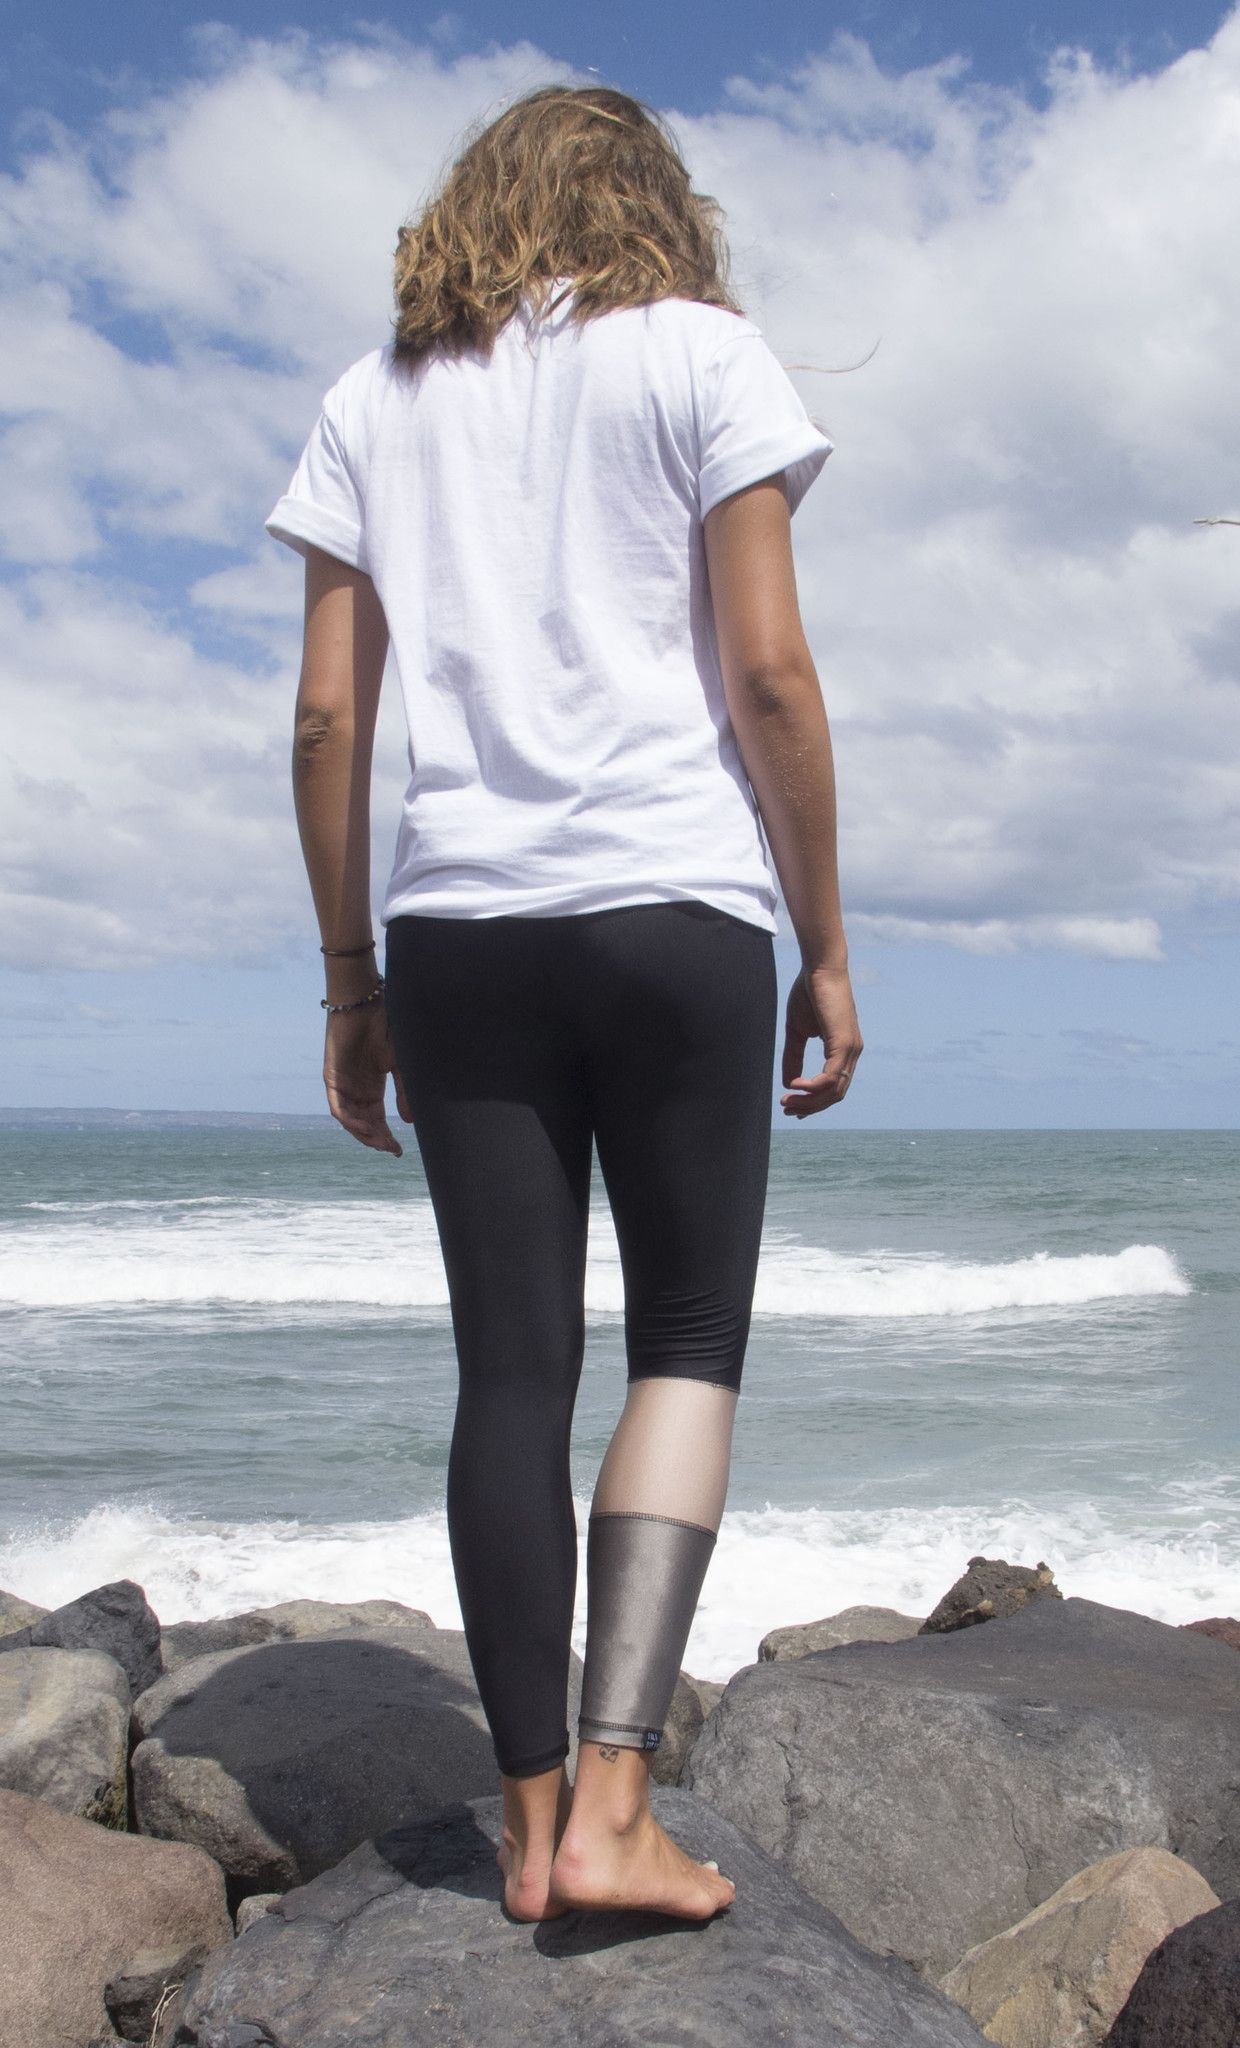 MATT BLACK SURF LEGGINGS - SINGLE LEG